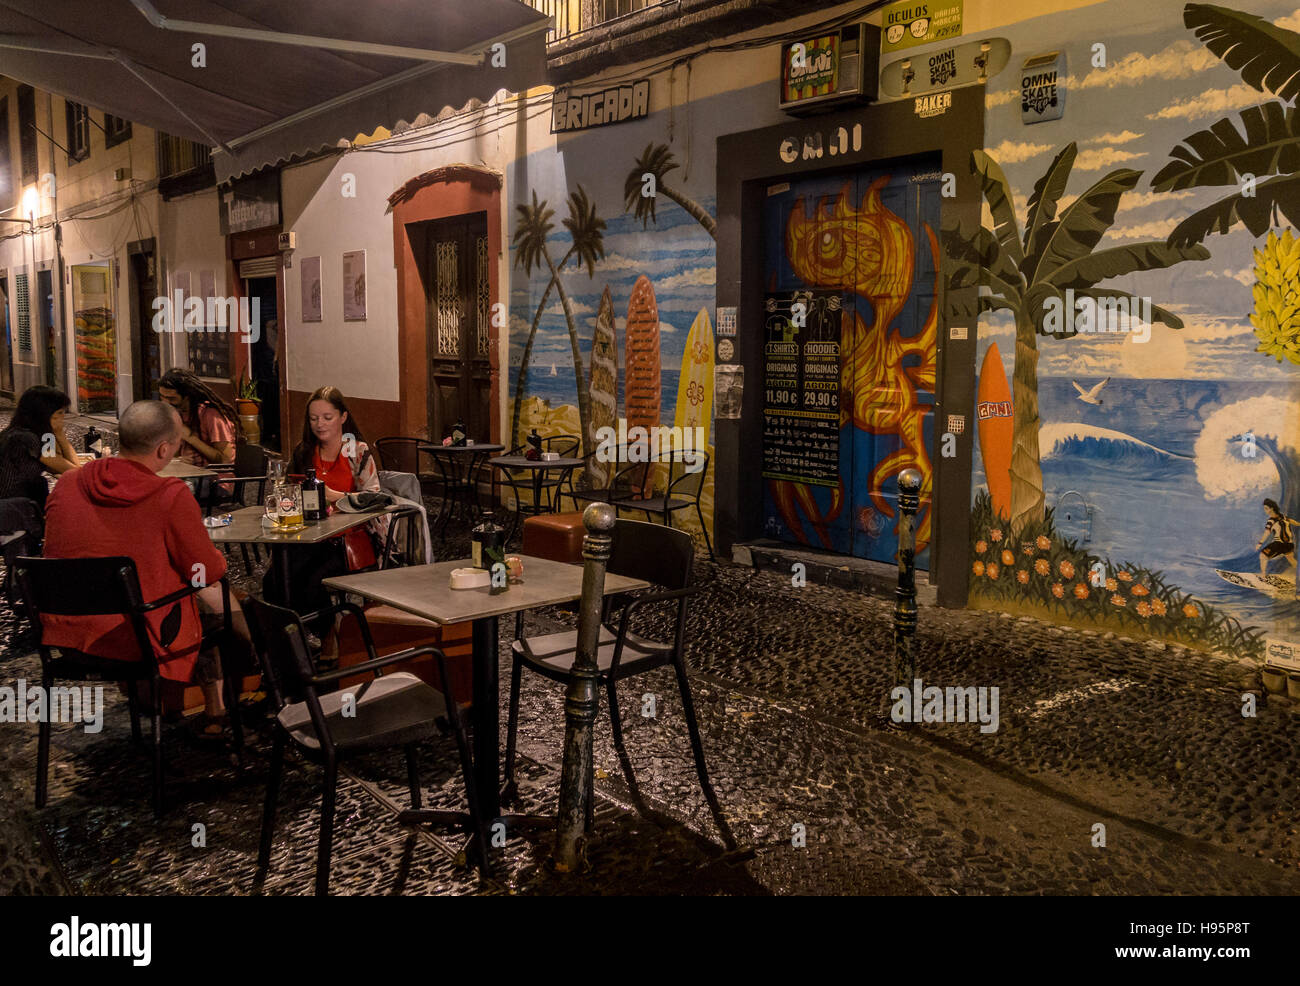 Diners outside a restaurant in an old street at night with murals on the walls - Stock Image